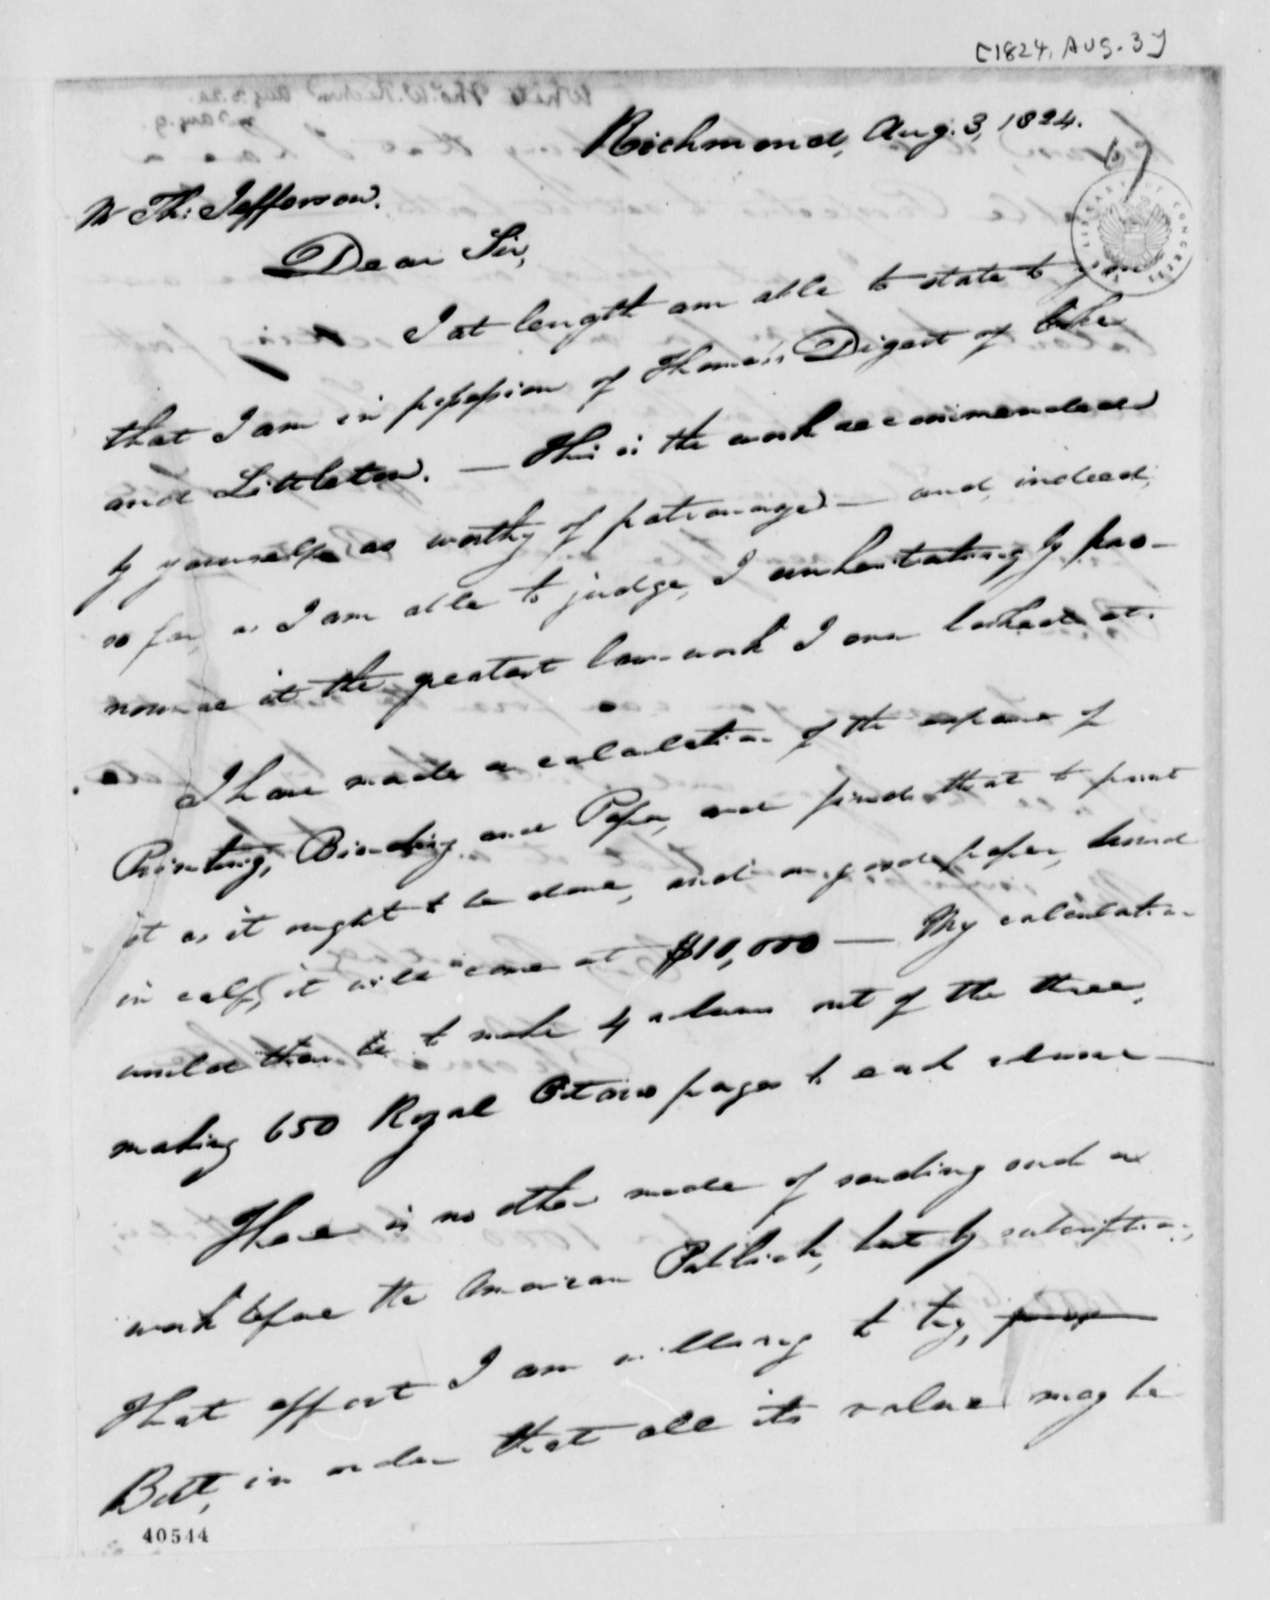 Thomas W. White to Thomas Jefferson, August 3, 1824